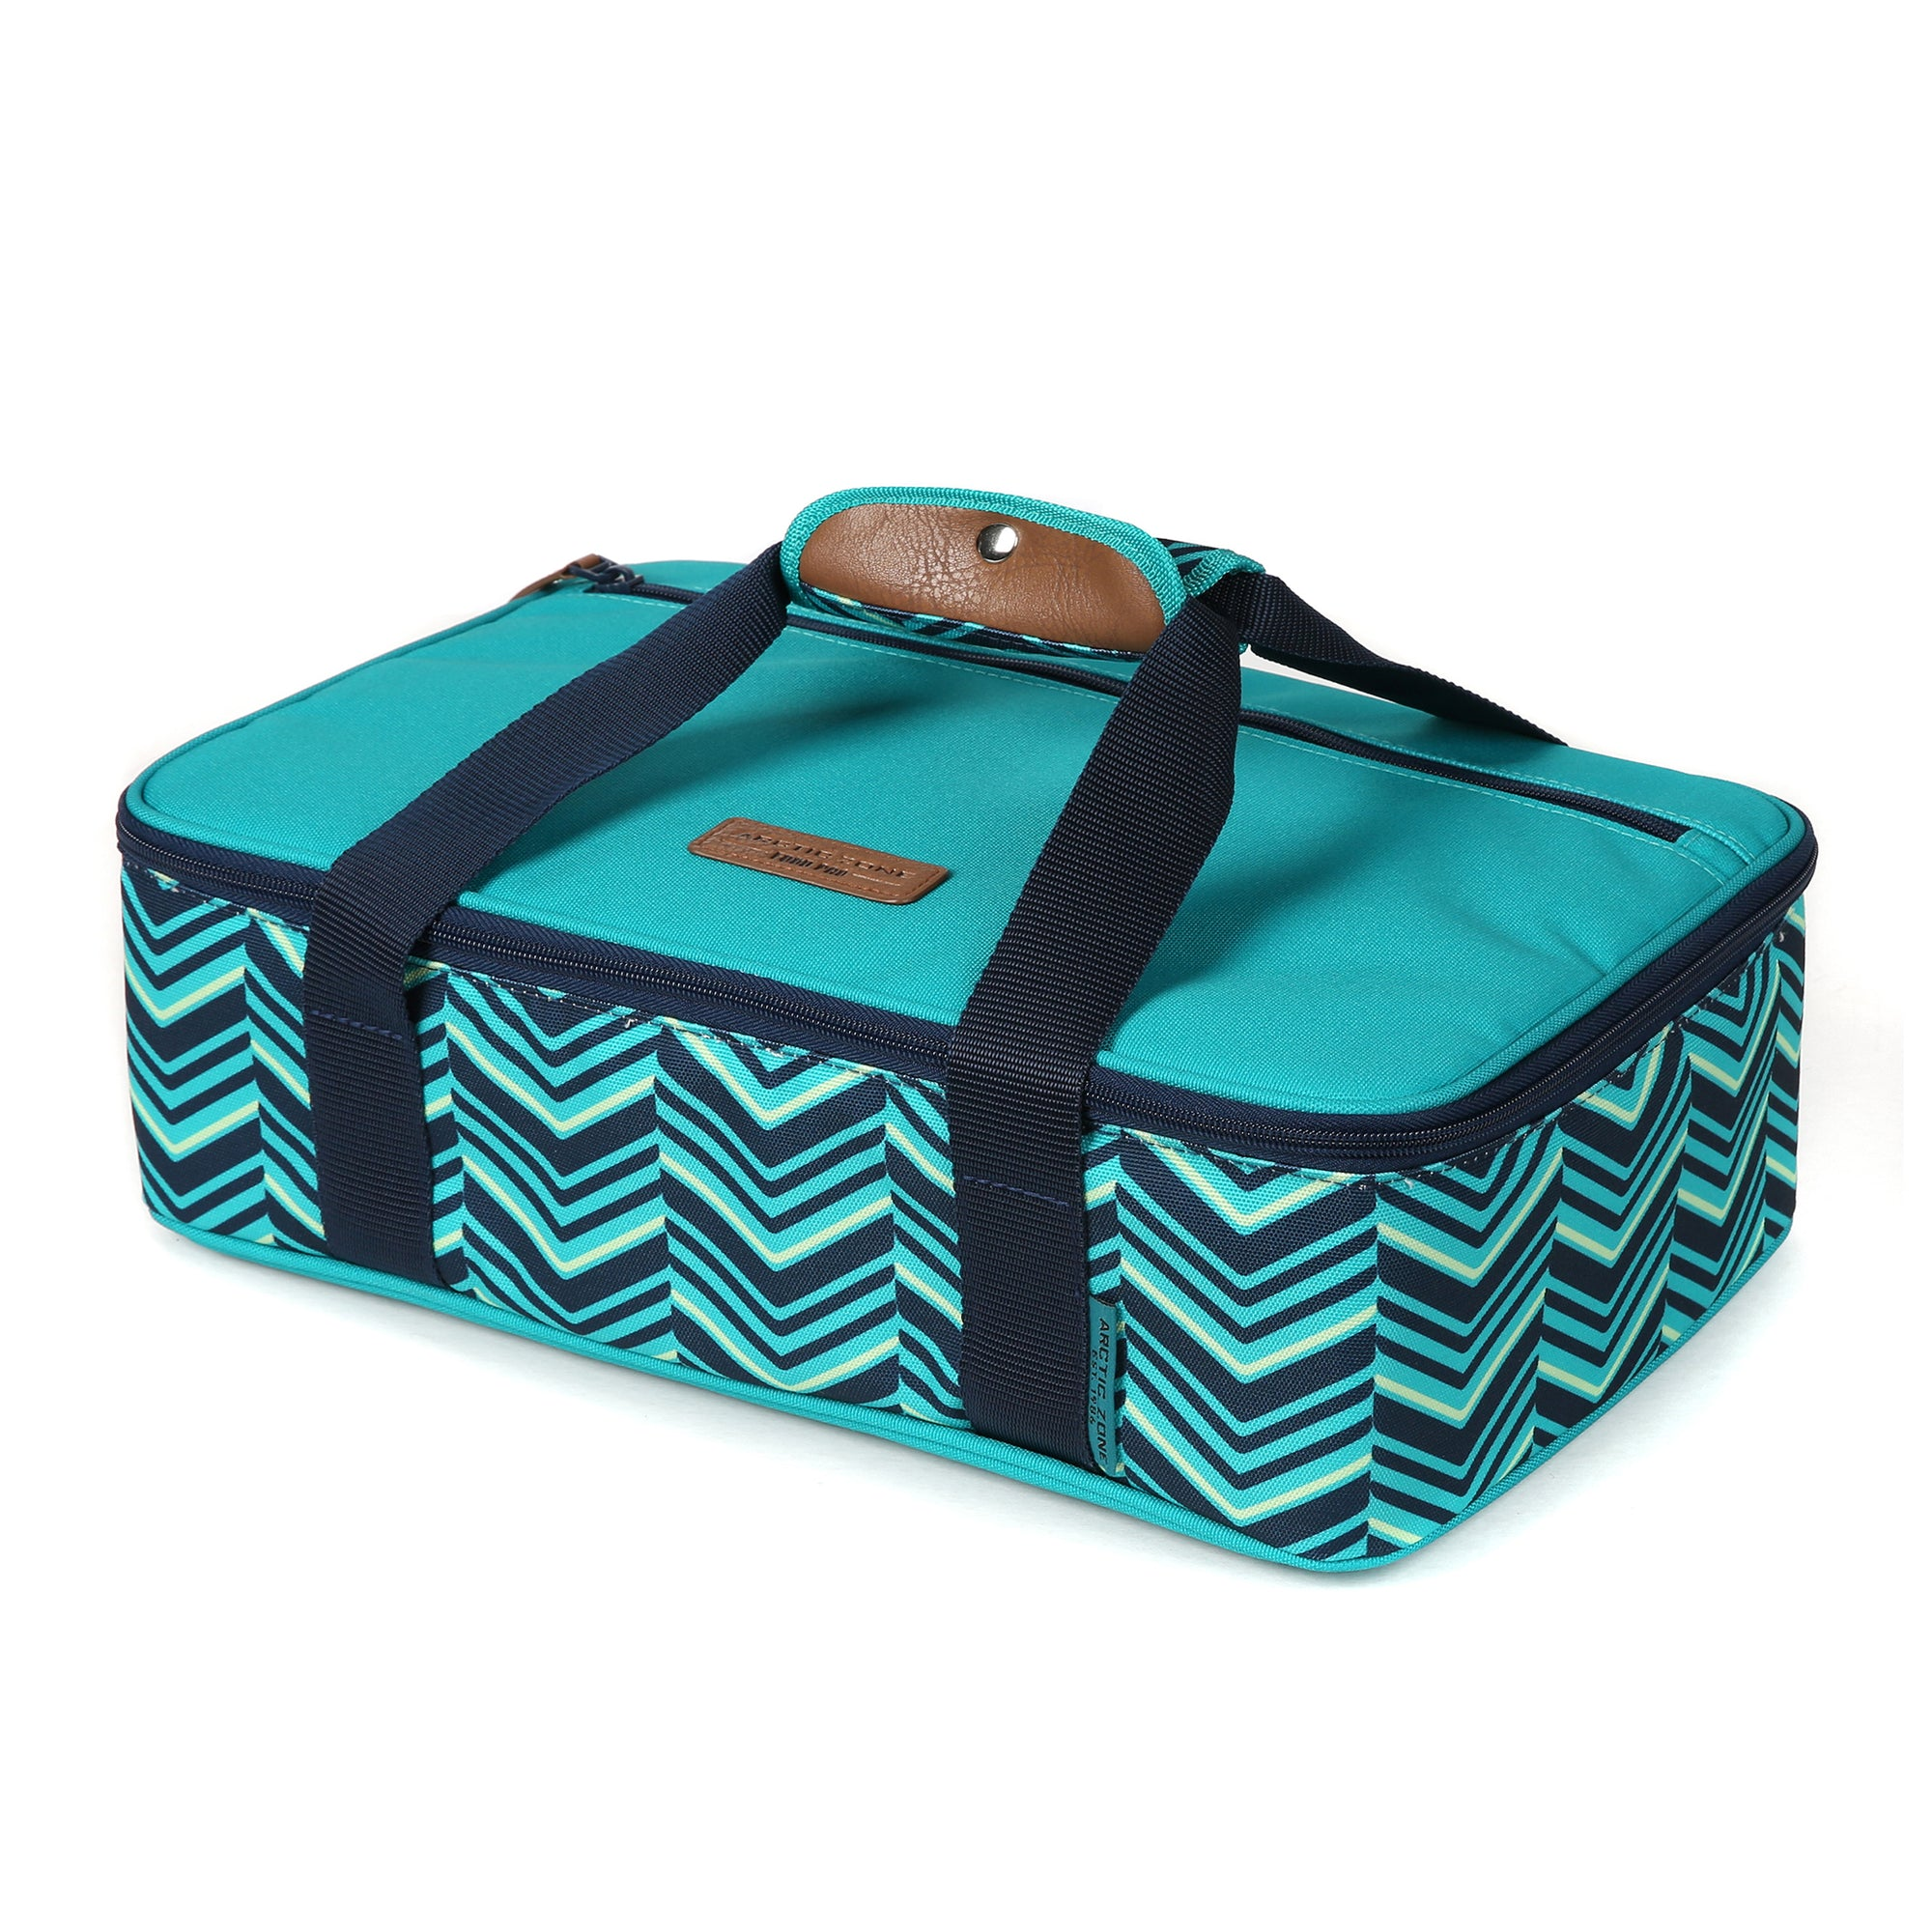 Arctic Zone® Food Pro Thermal Carrier -Teal - Front, closed